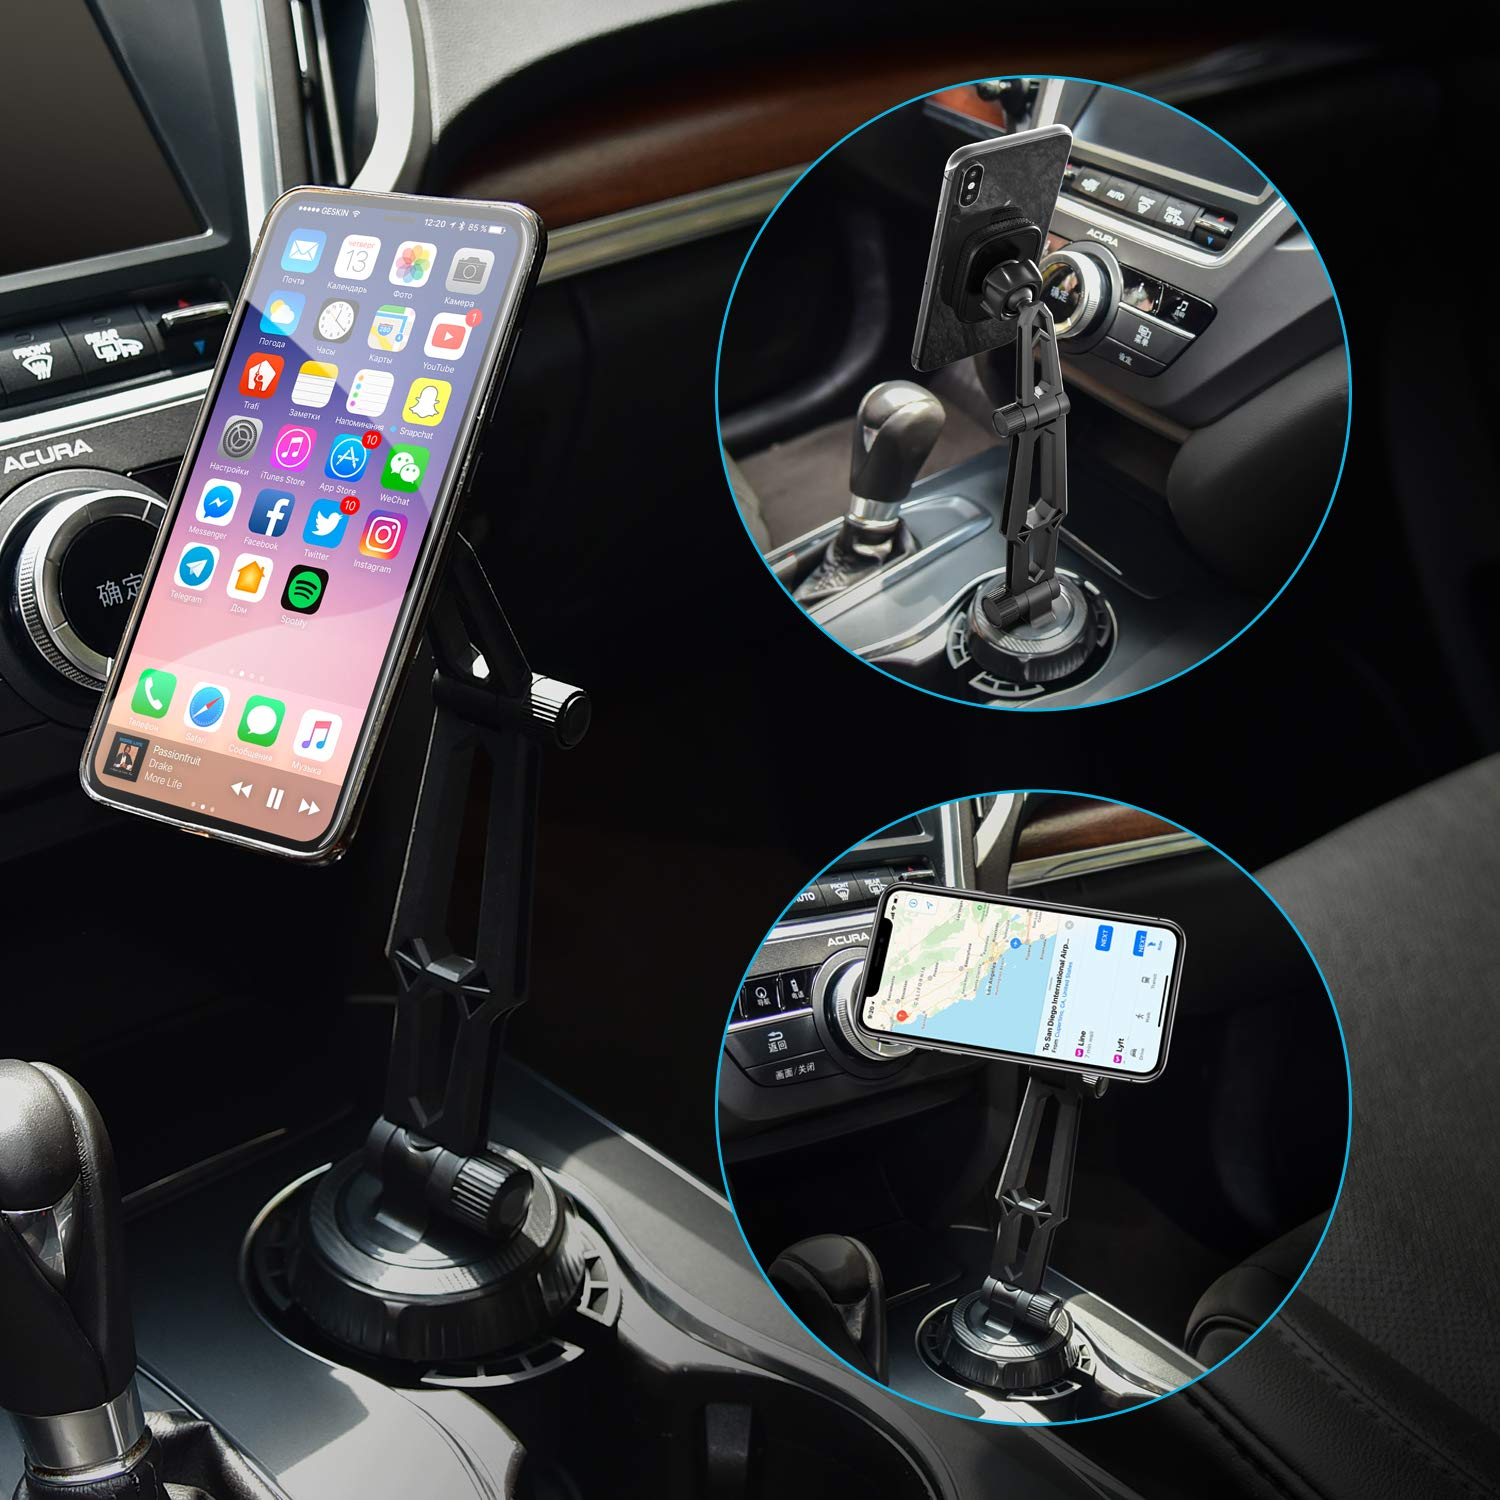 Safe driving telescopic arm magnetic suction cup holder phone mount for tablet gps